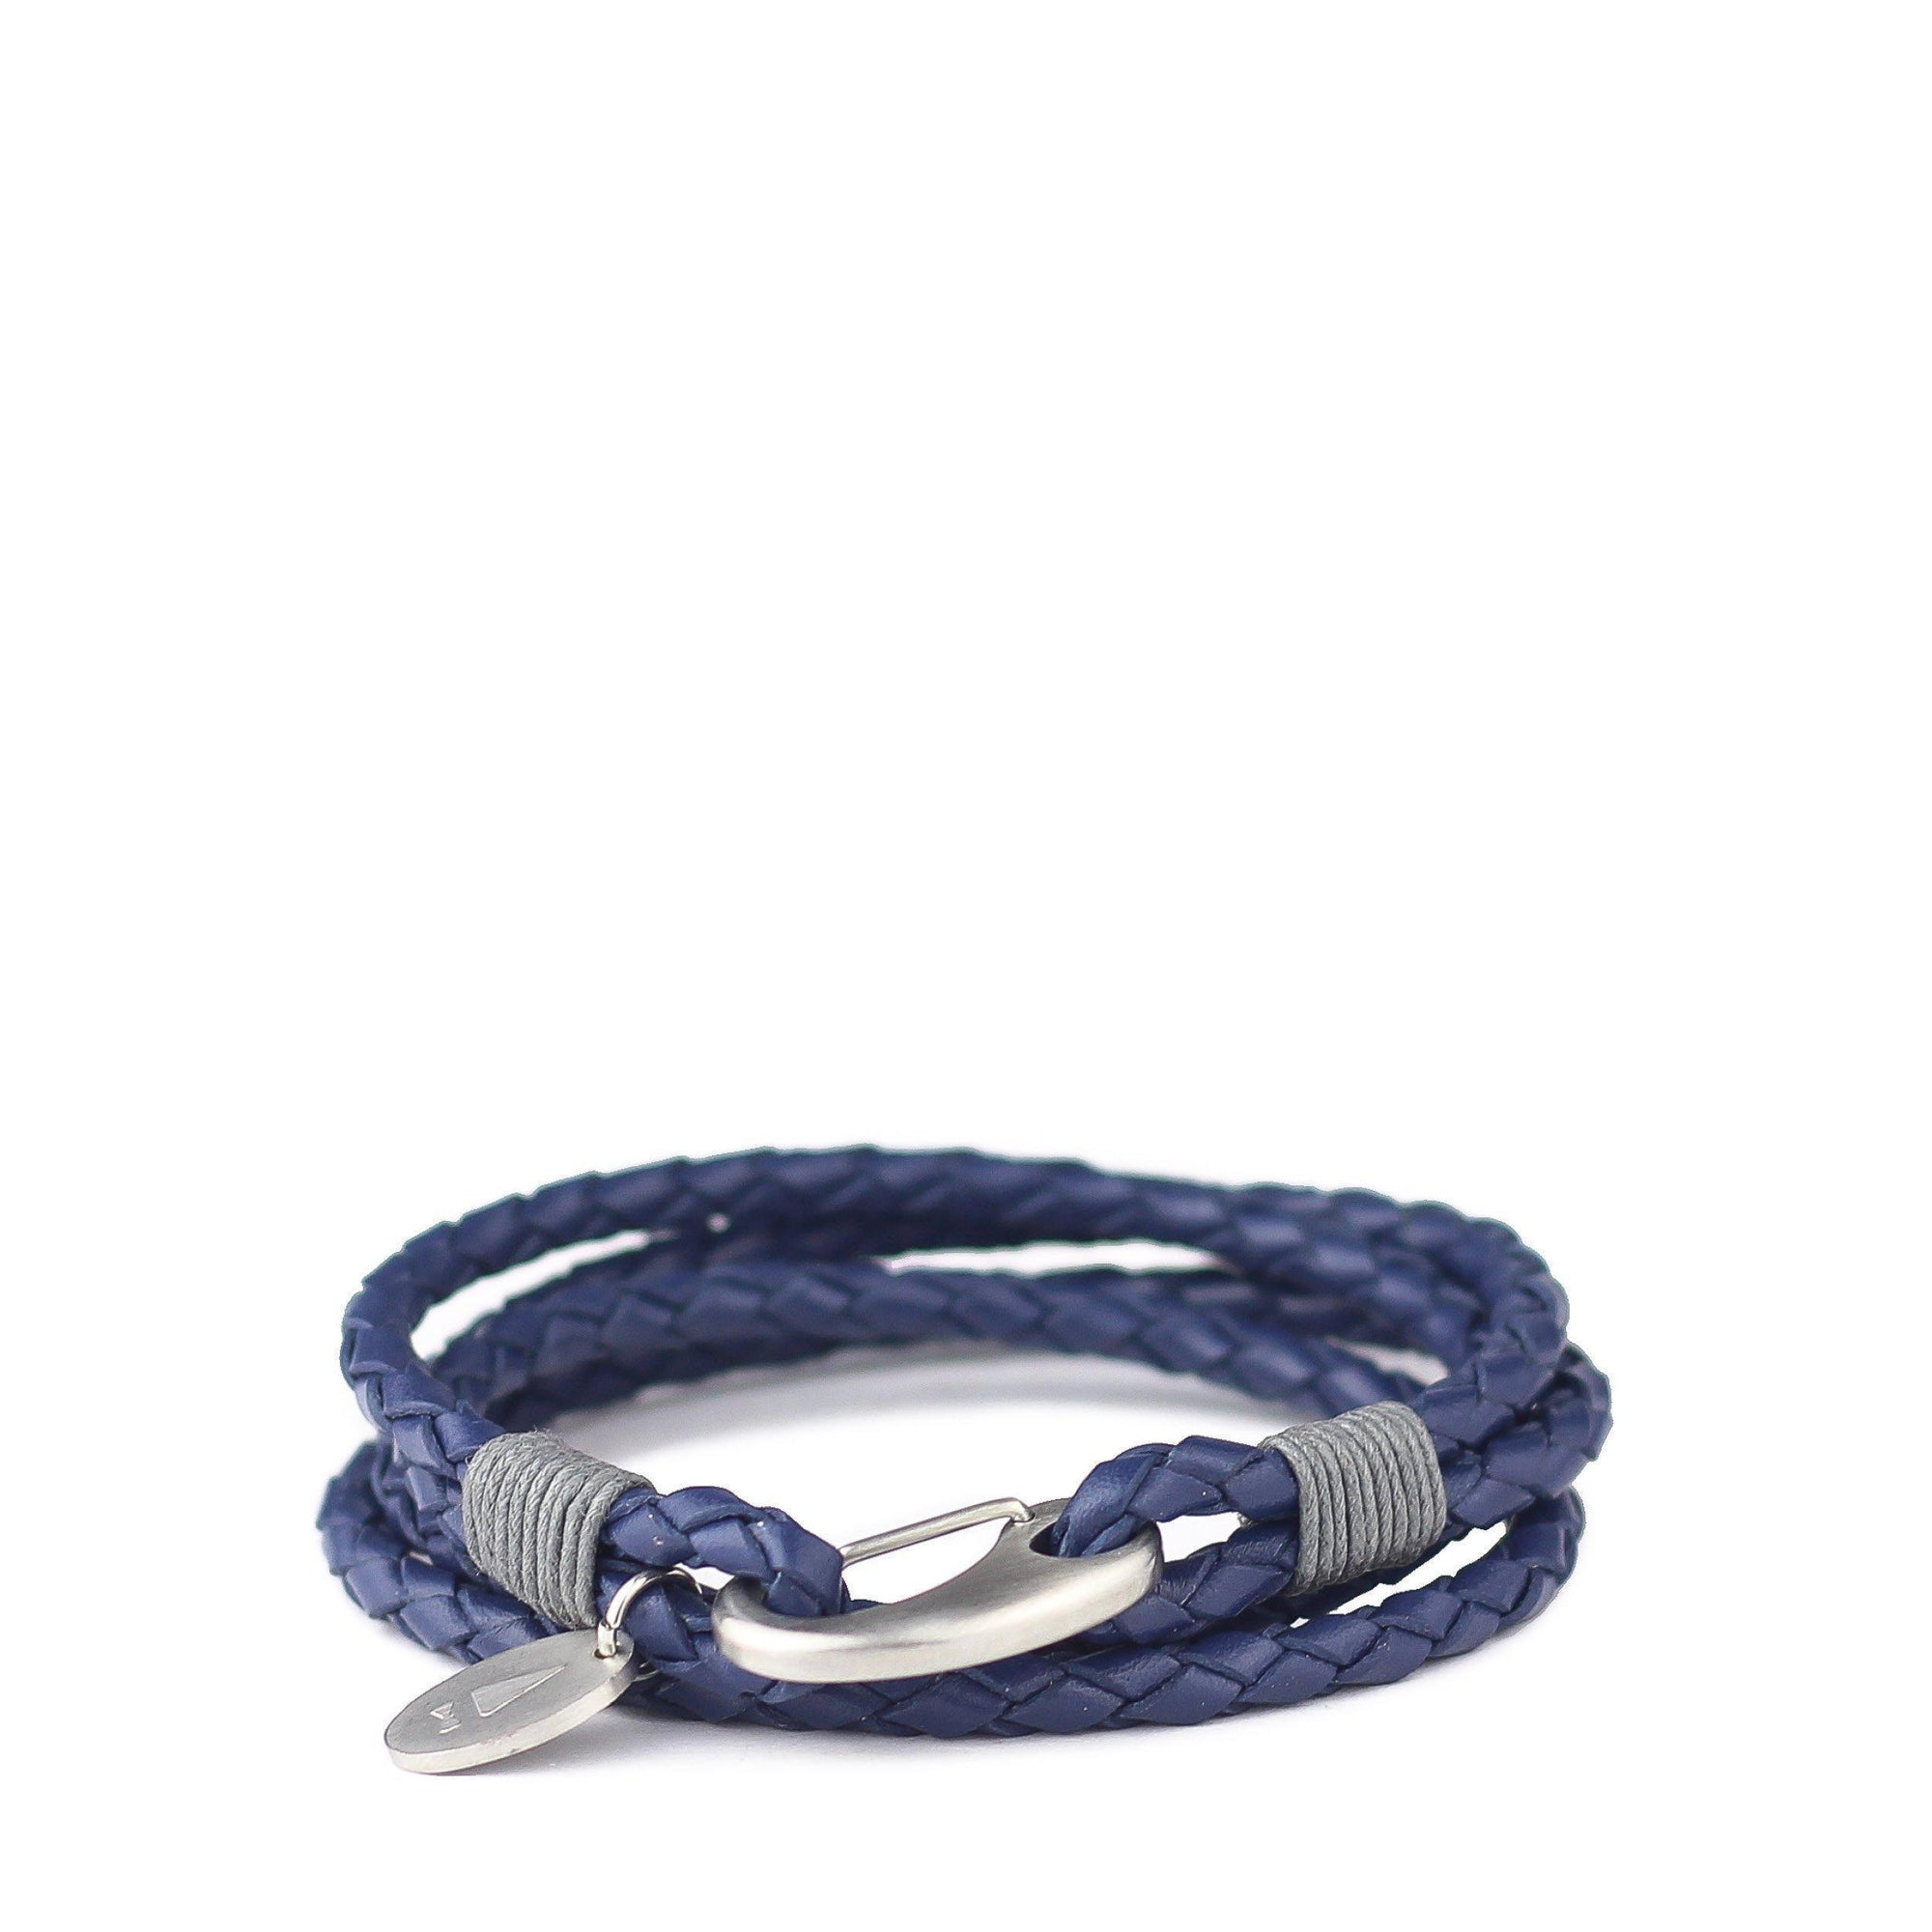 Gnome and Bow Ralph Multi-Wrap Blue Men's Leather Bracelet-Gnome & Bow-Temples and Markets